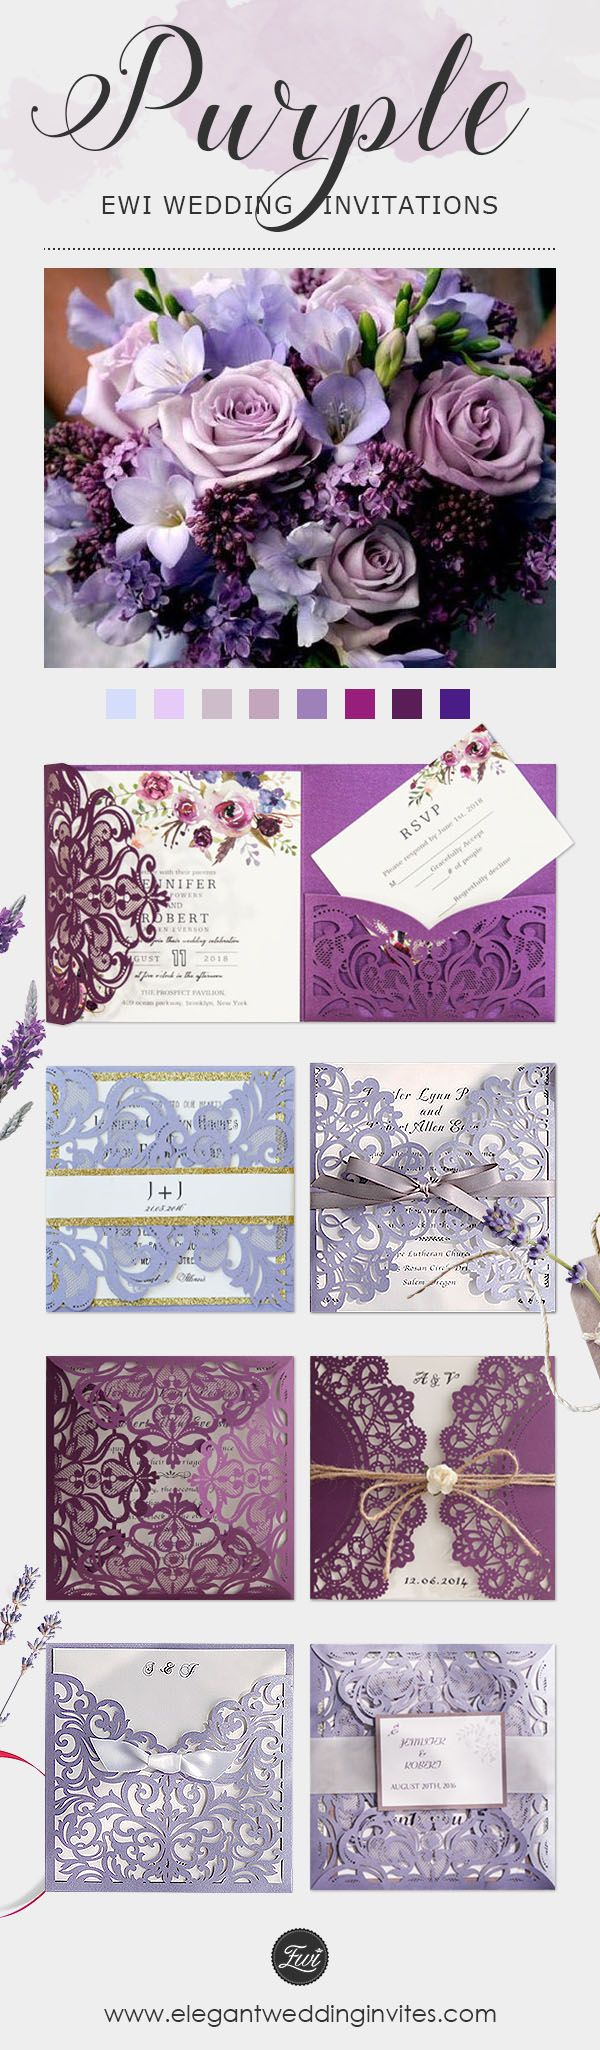 not on the high street winter wedding invitations%0A ALYSSA  Gold and Plum Laser Cut Wedding Invitation  Purple Shimmer Laser  Cut Gatefold Doors w  Gold Ribbon and Bronze Key   Pinterest   Laser cut  wedding